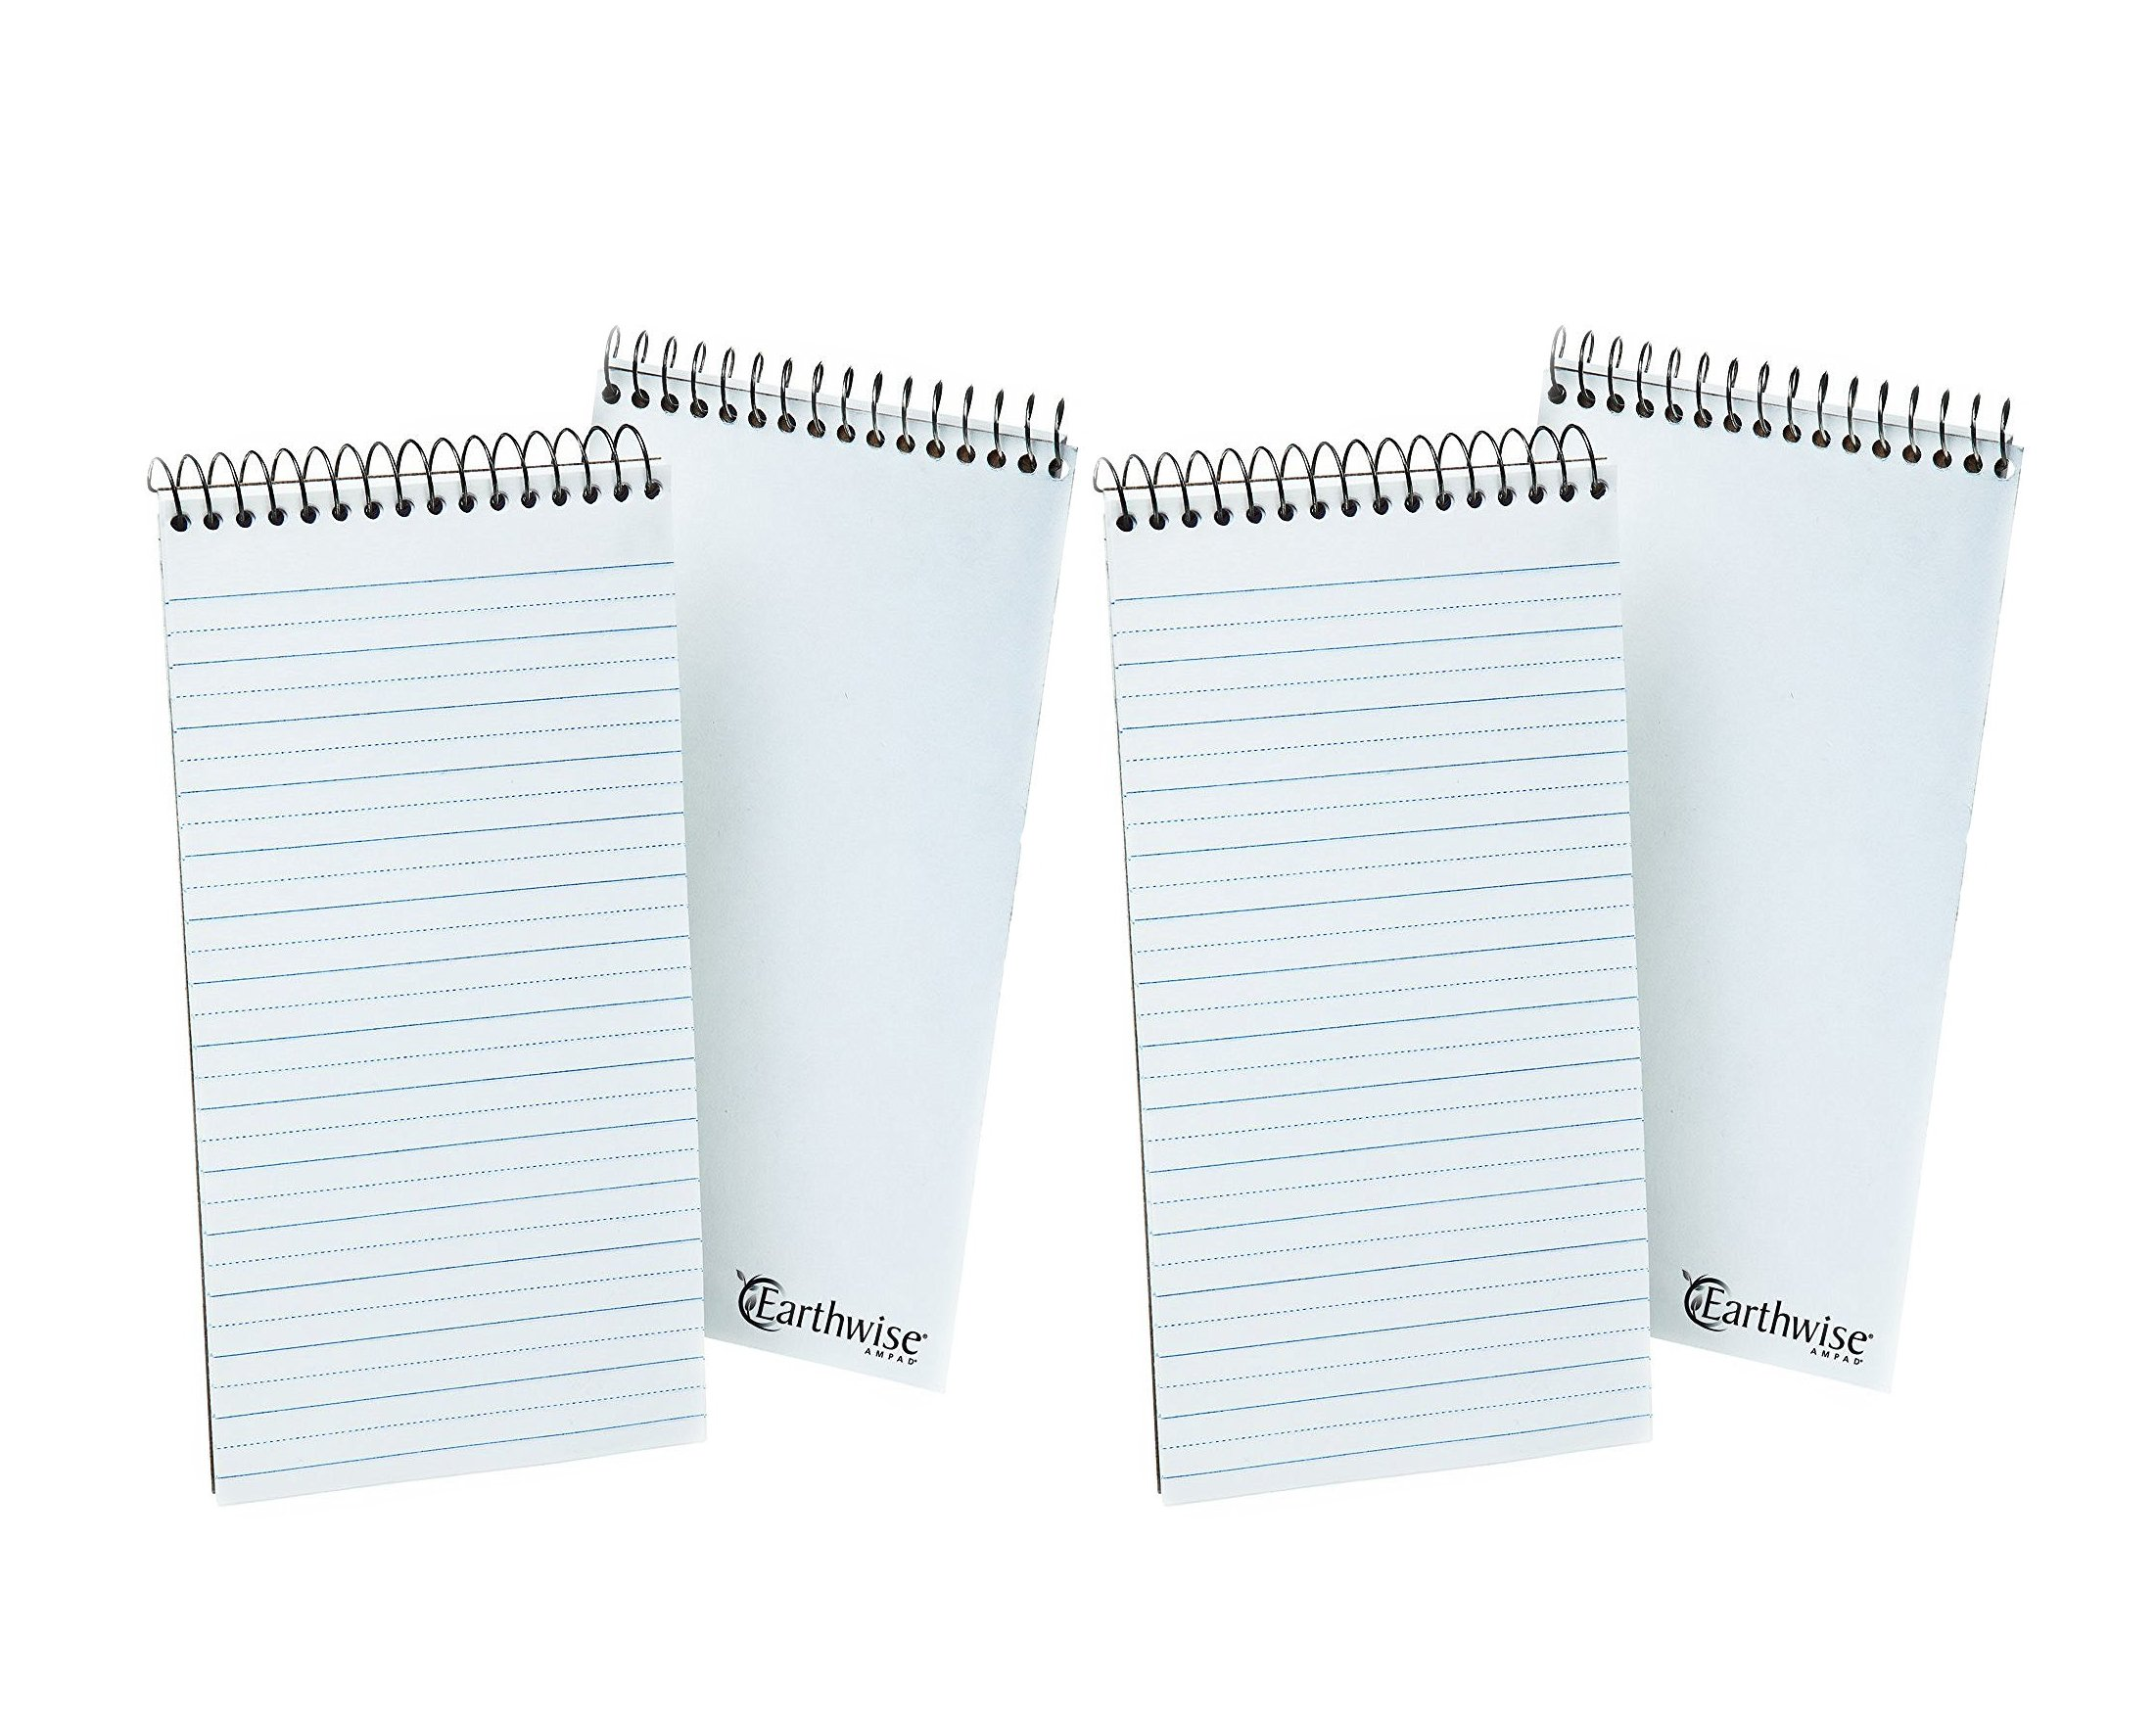 EarthWise by Ampad Reporters Notebook, 4 x 8 Inches, 70 Sheets, Pitman Ruled, 4-Pack (25-282R) White